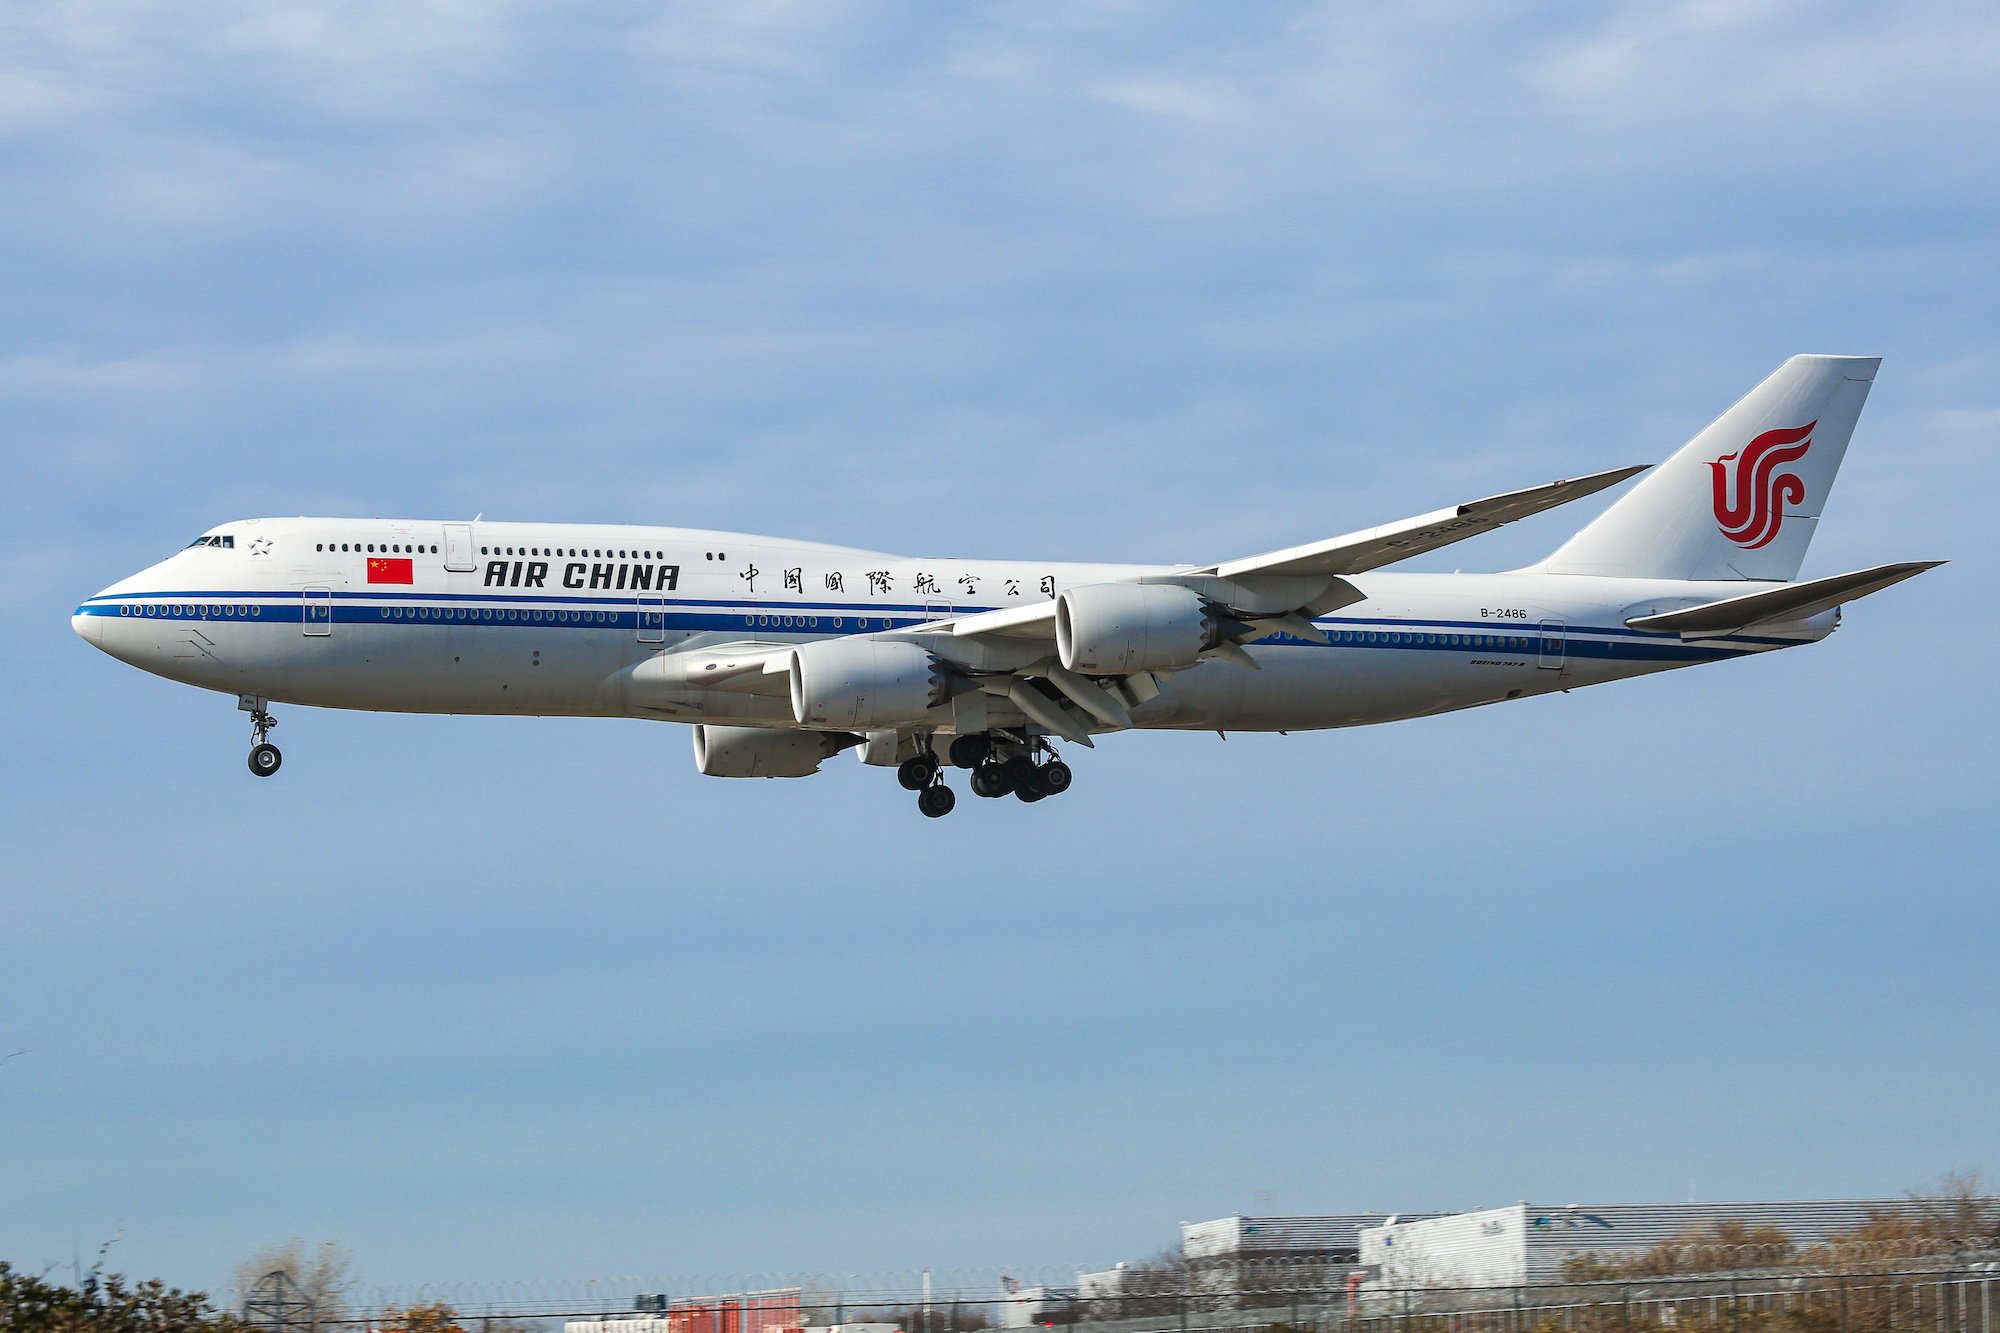 Air China Boeing 747-8 commercial aircraft, nicknamed the Queen of the Skies, as seen flying on final approach landing at New York JFK John F. Kennedy International Airport on January 23, 2020.